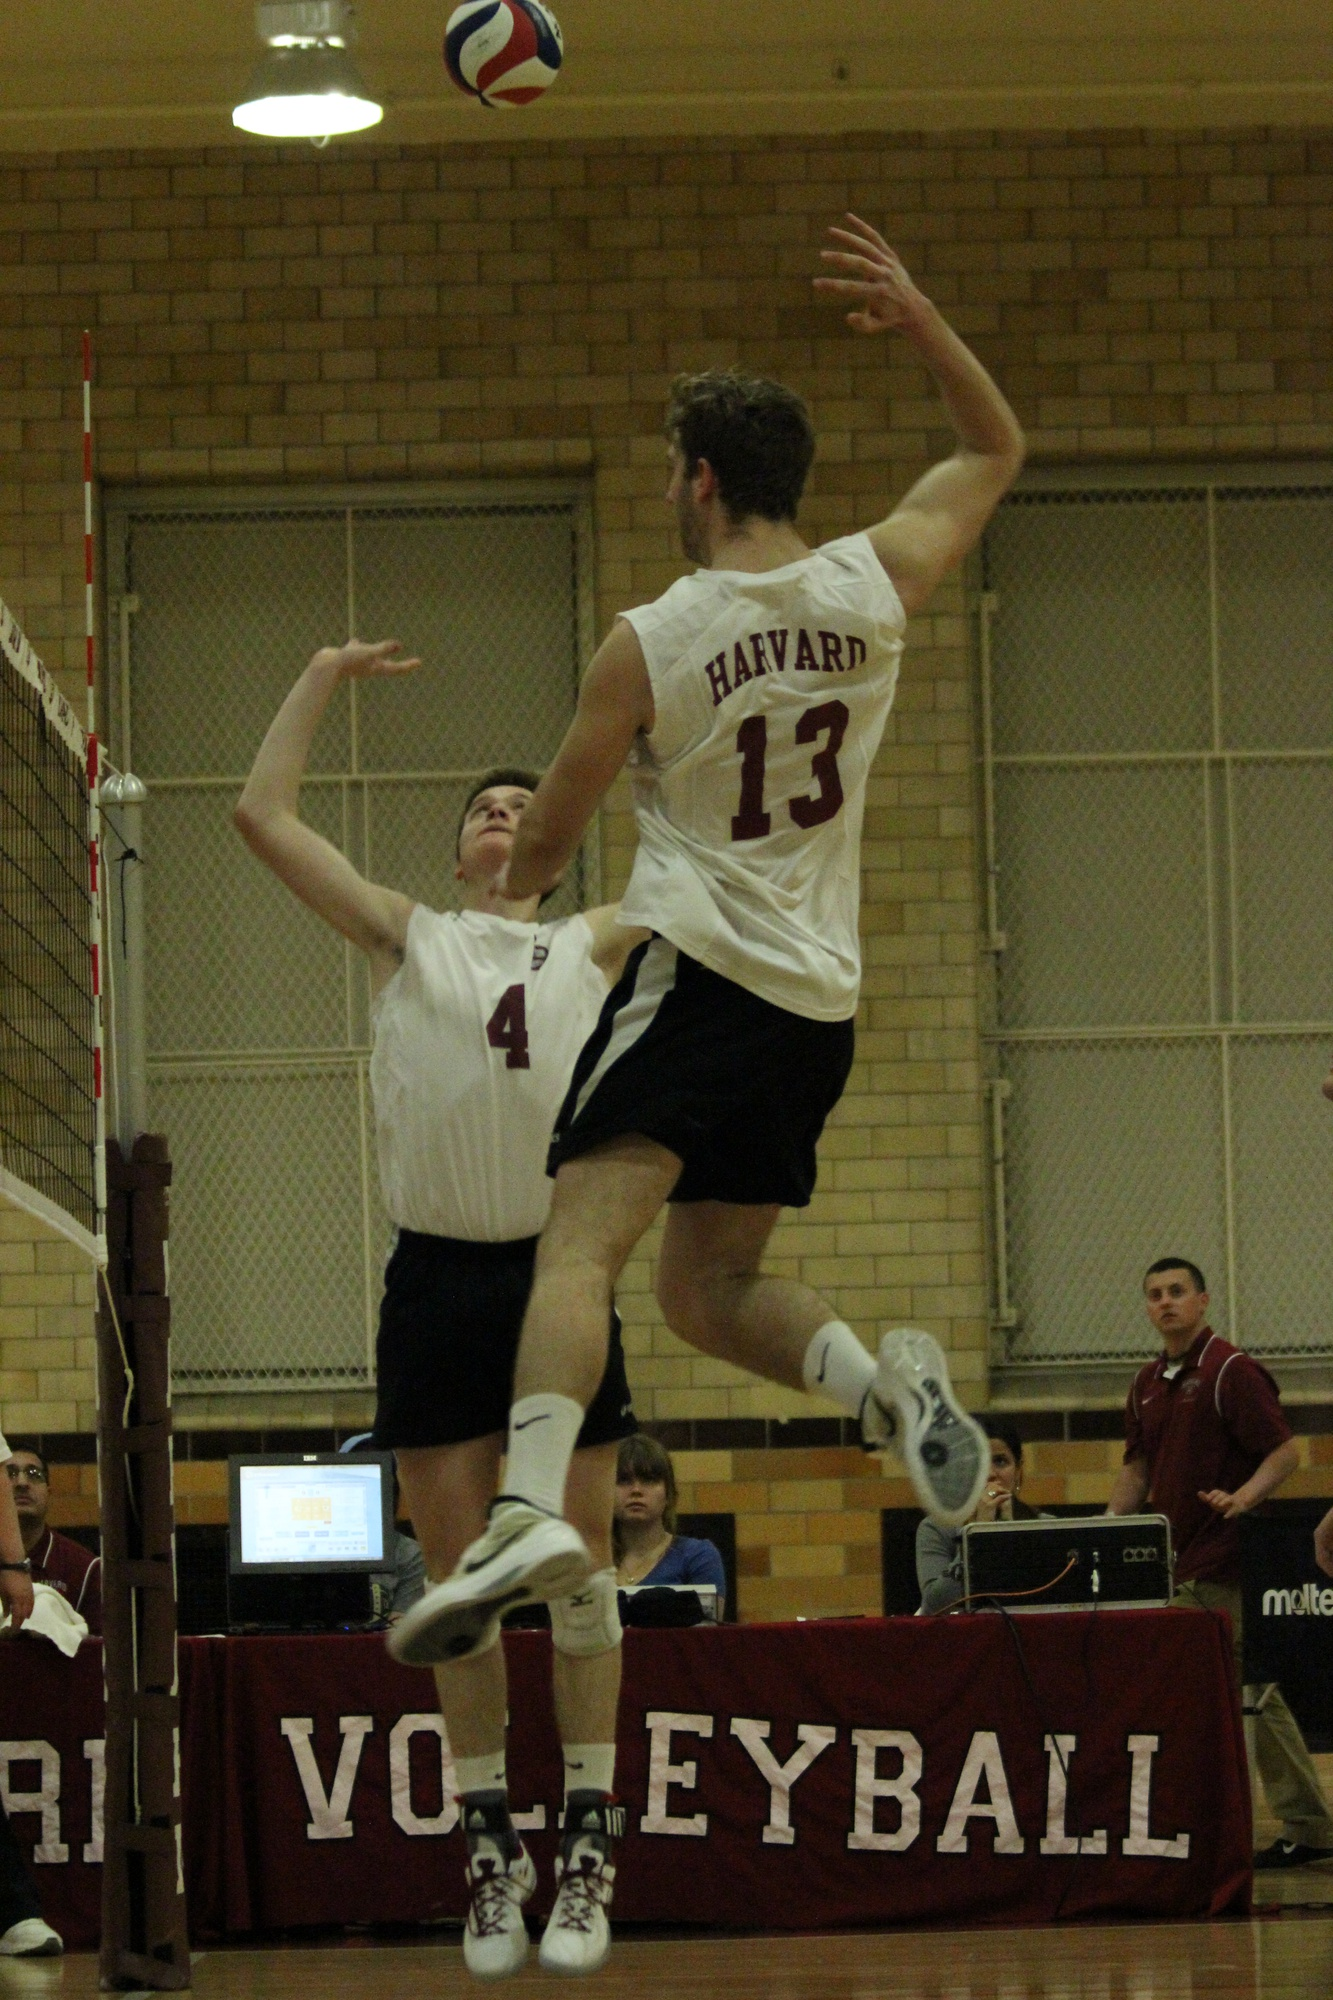 Senior middle blocker Kyle Rehkemper, shown here in previous action, will spearhead the Crimson offense against Princeton on Thursday. Harvard has defeated the Tigers twice this season, and a victory over its conference rival will propel the Crimson into the EIVA championship game.